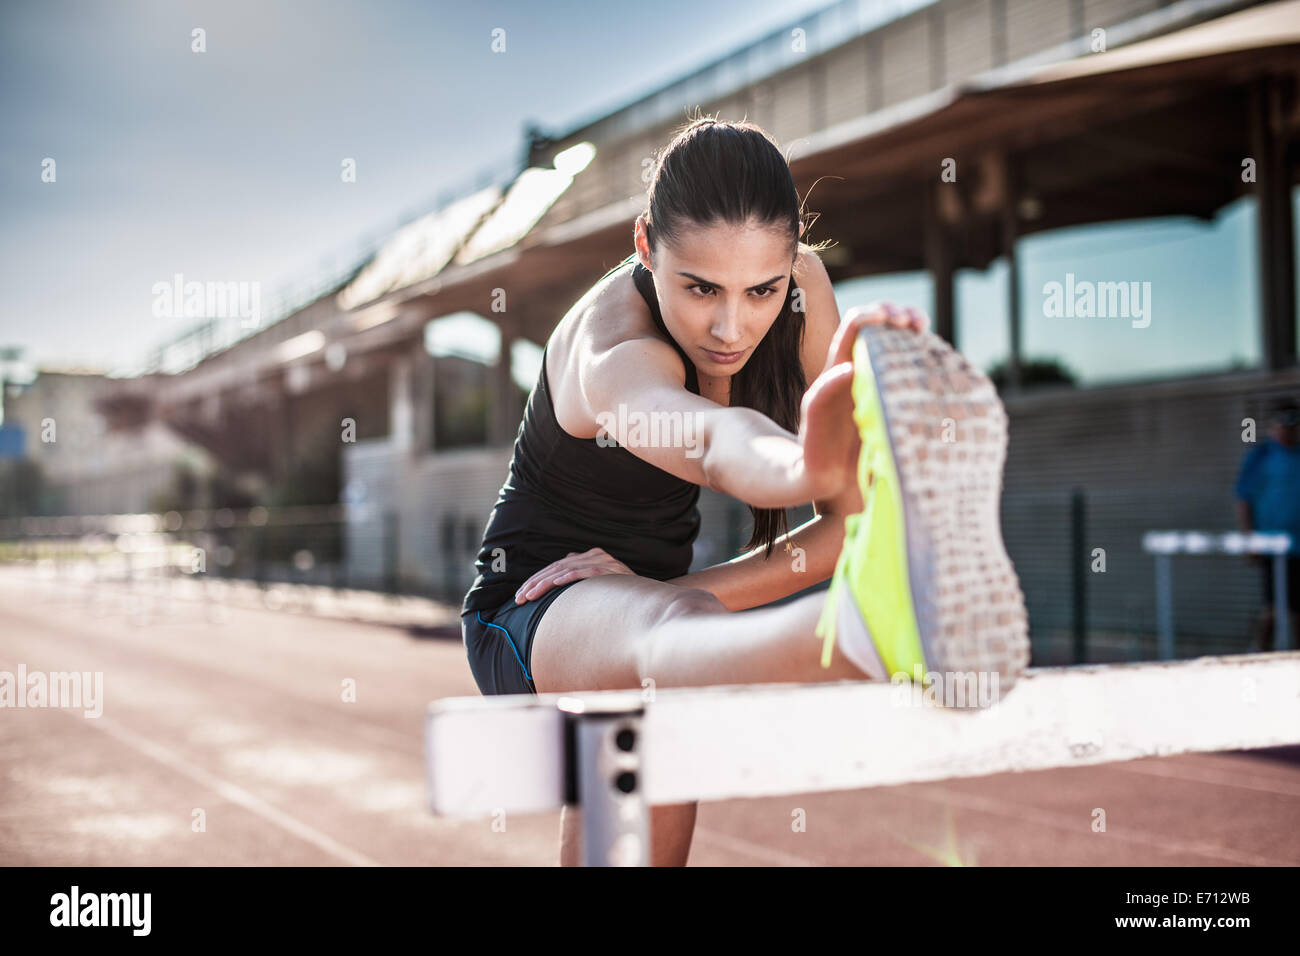 Young woman stretching leg on hurdle - Stock Image